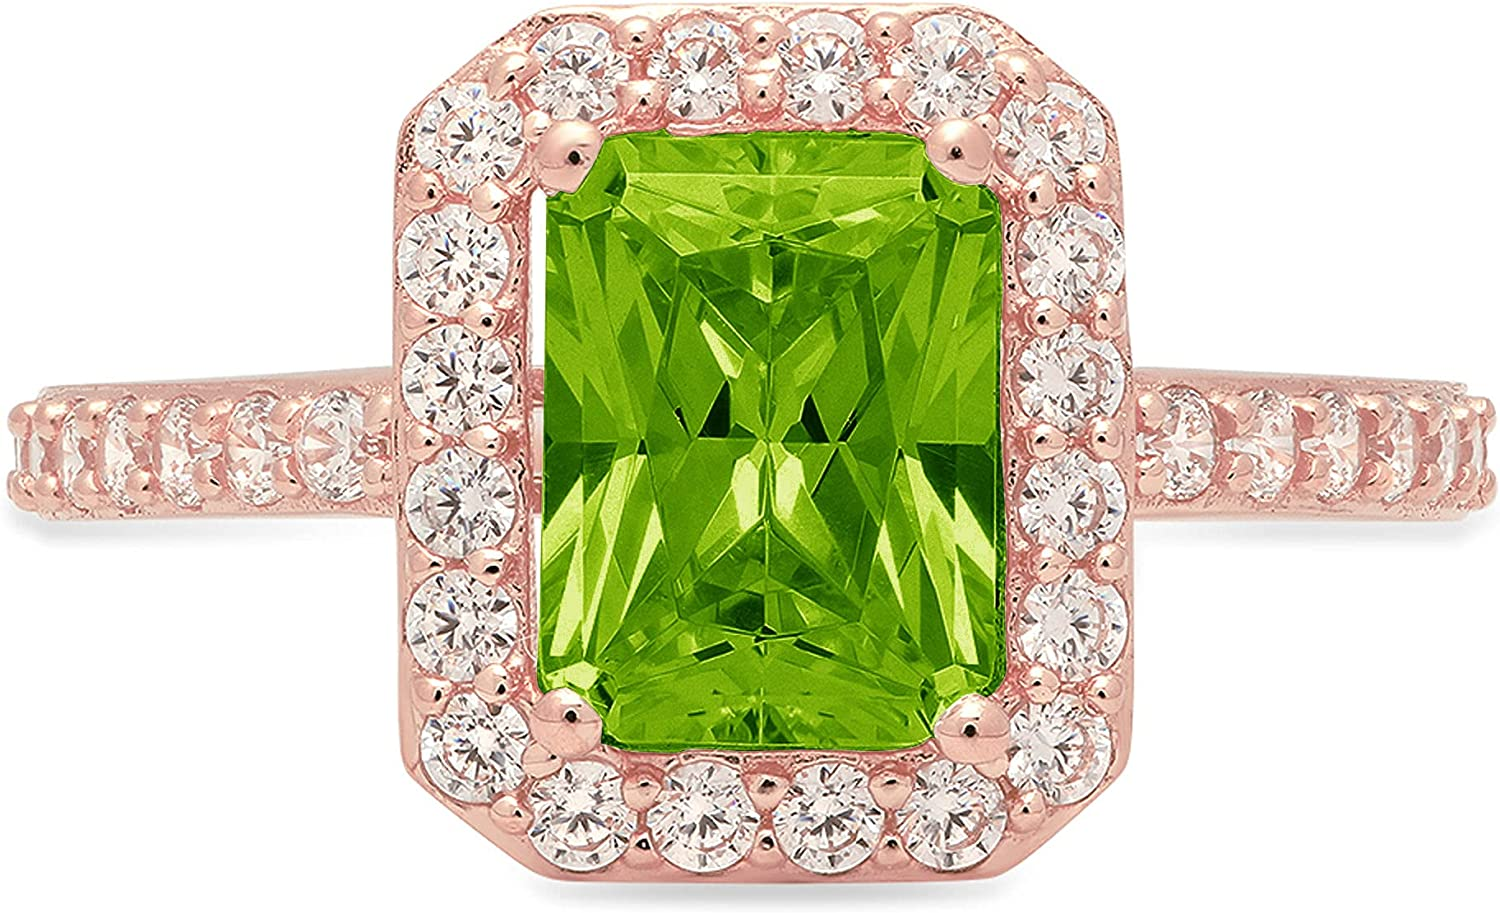 2.07ct Brilliant Emerald Cut Solitaire Accent Halo Genuine Flawless Natural Green Peridot Gemstone Engagement Promise Anniversary Bridal Wedding Ring Solid 18K Rose Gold